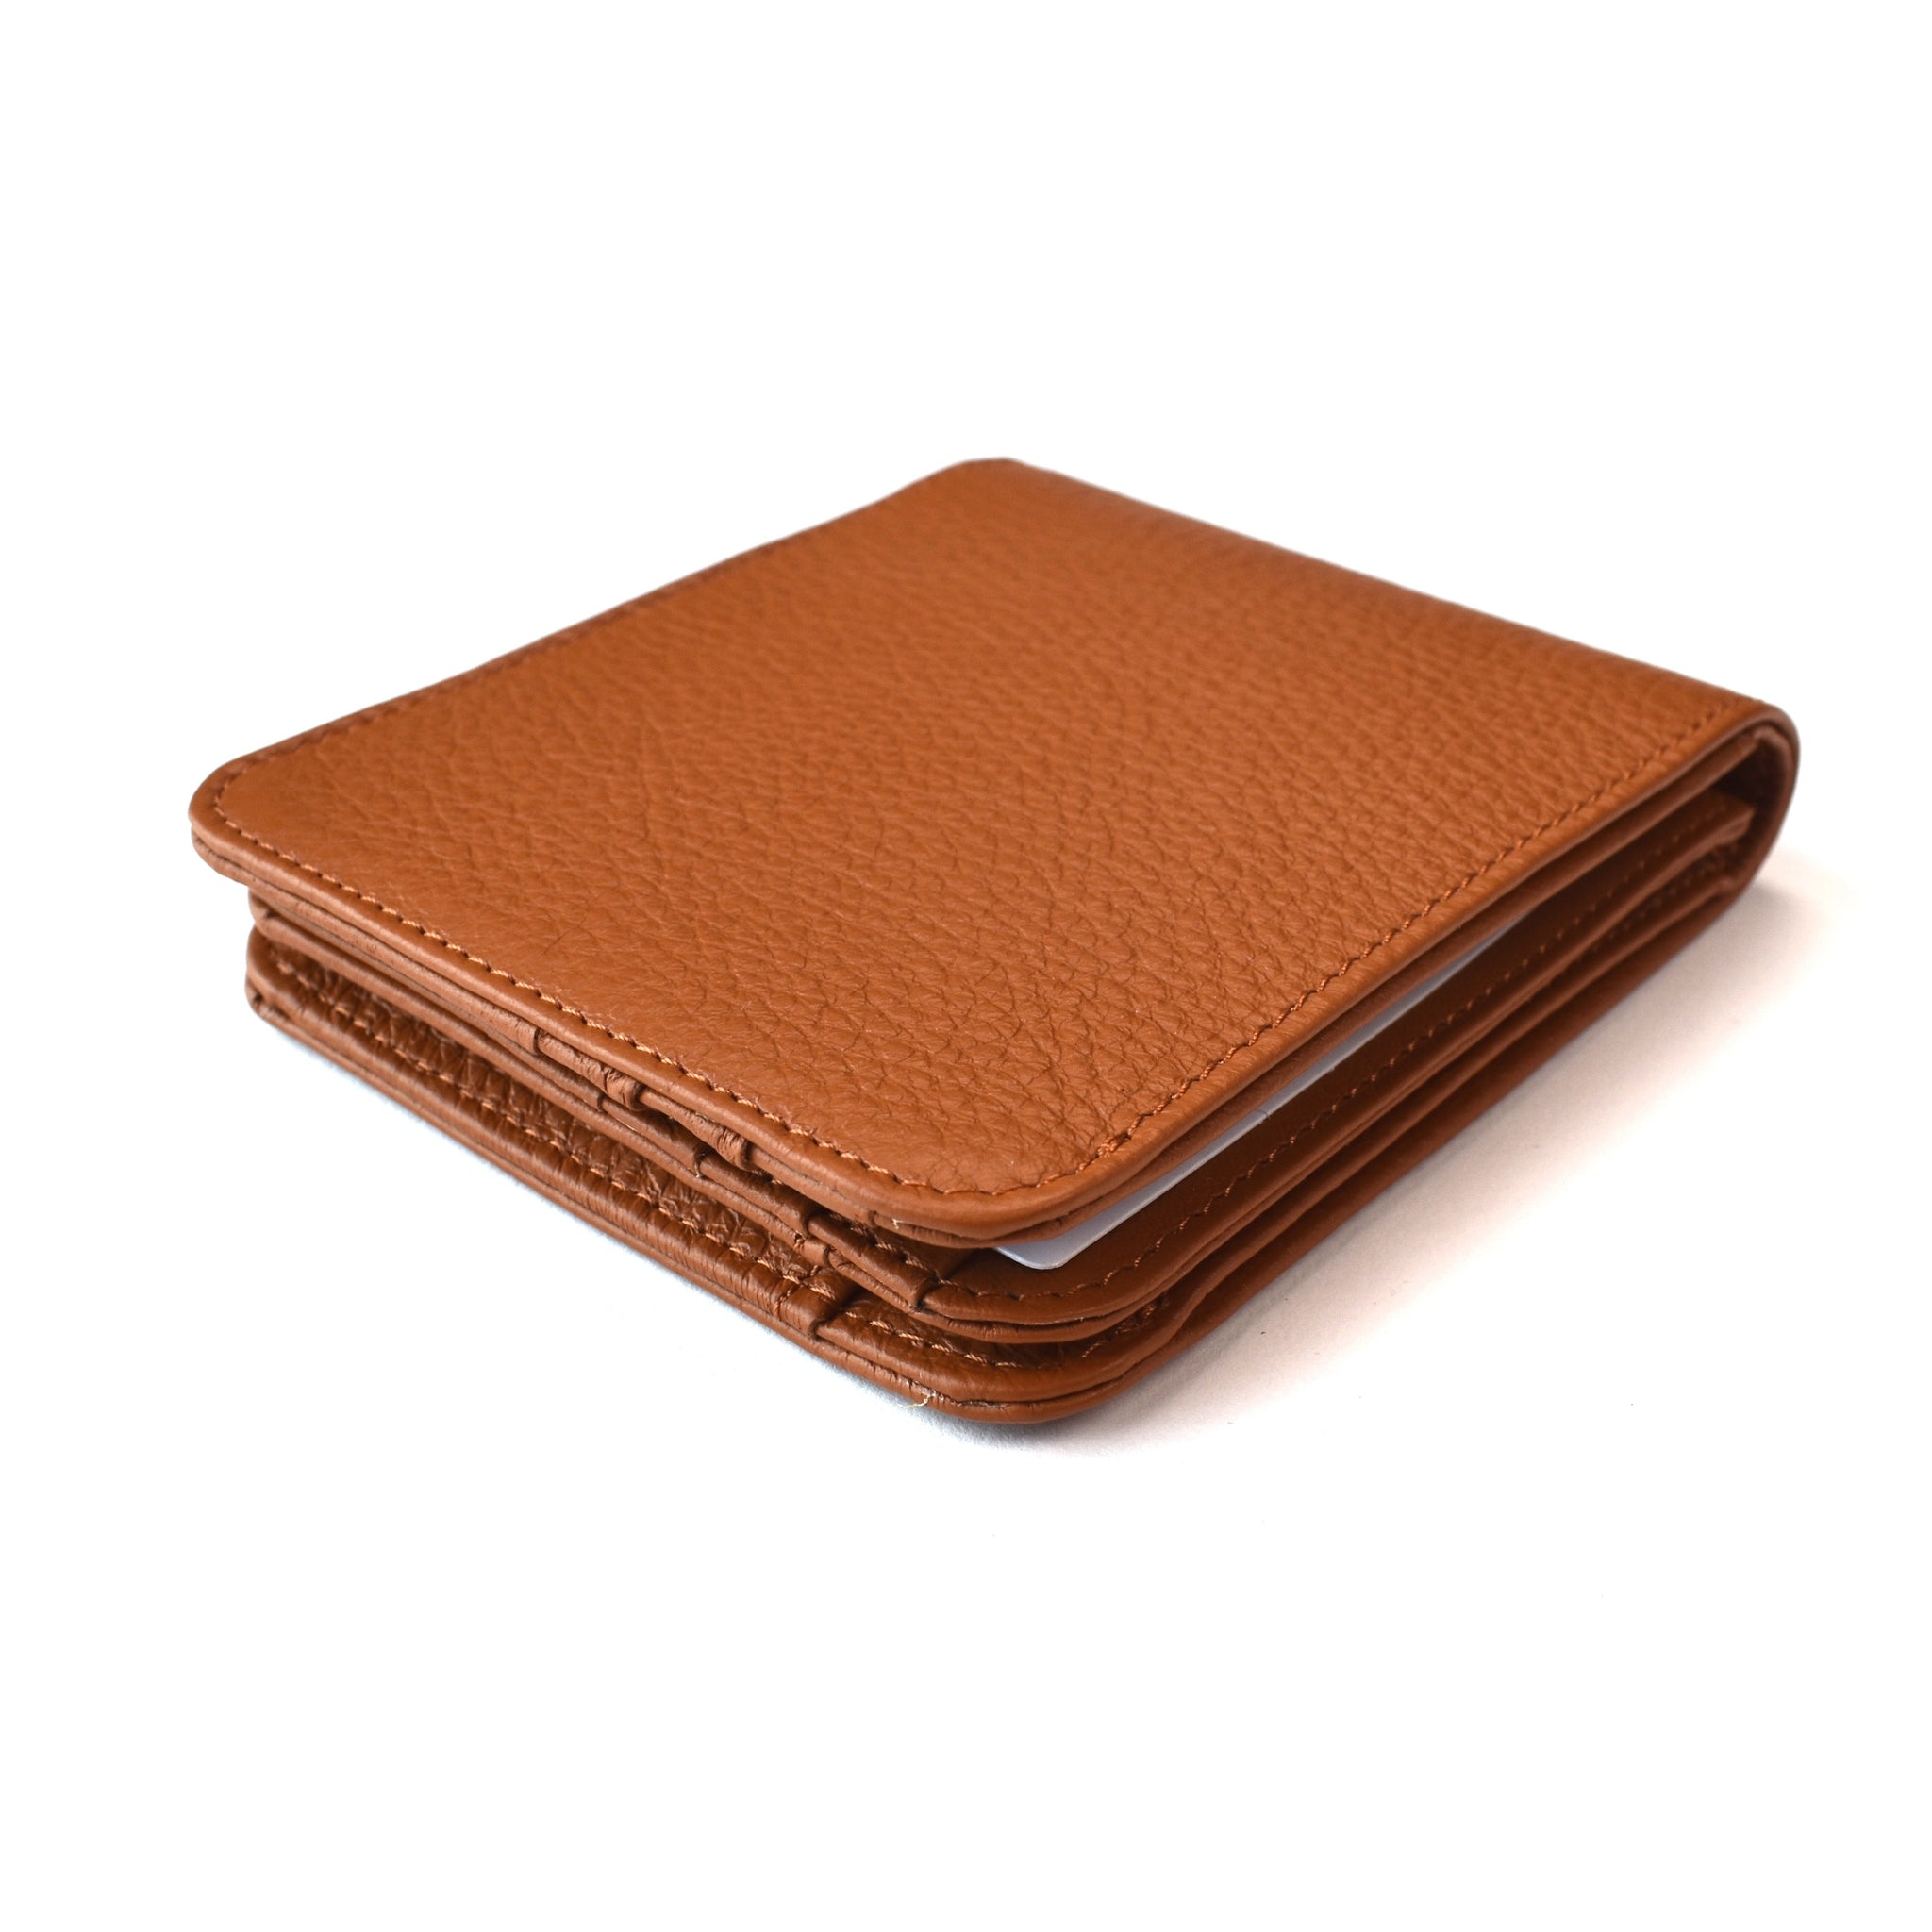 Maison Margiela - Brown Leather Removable Passcase Wallet